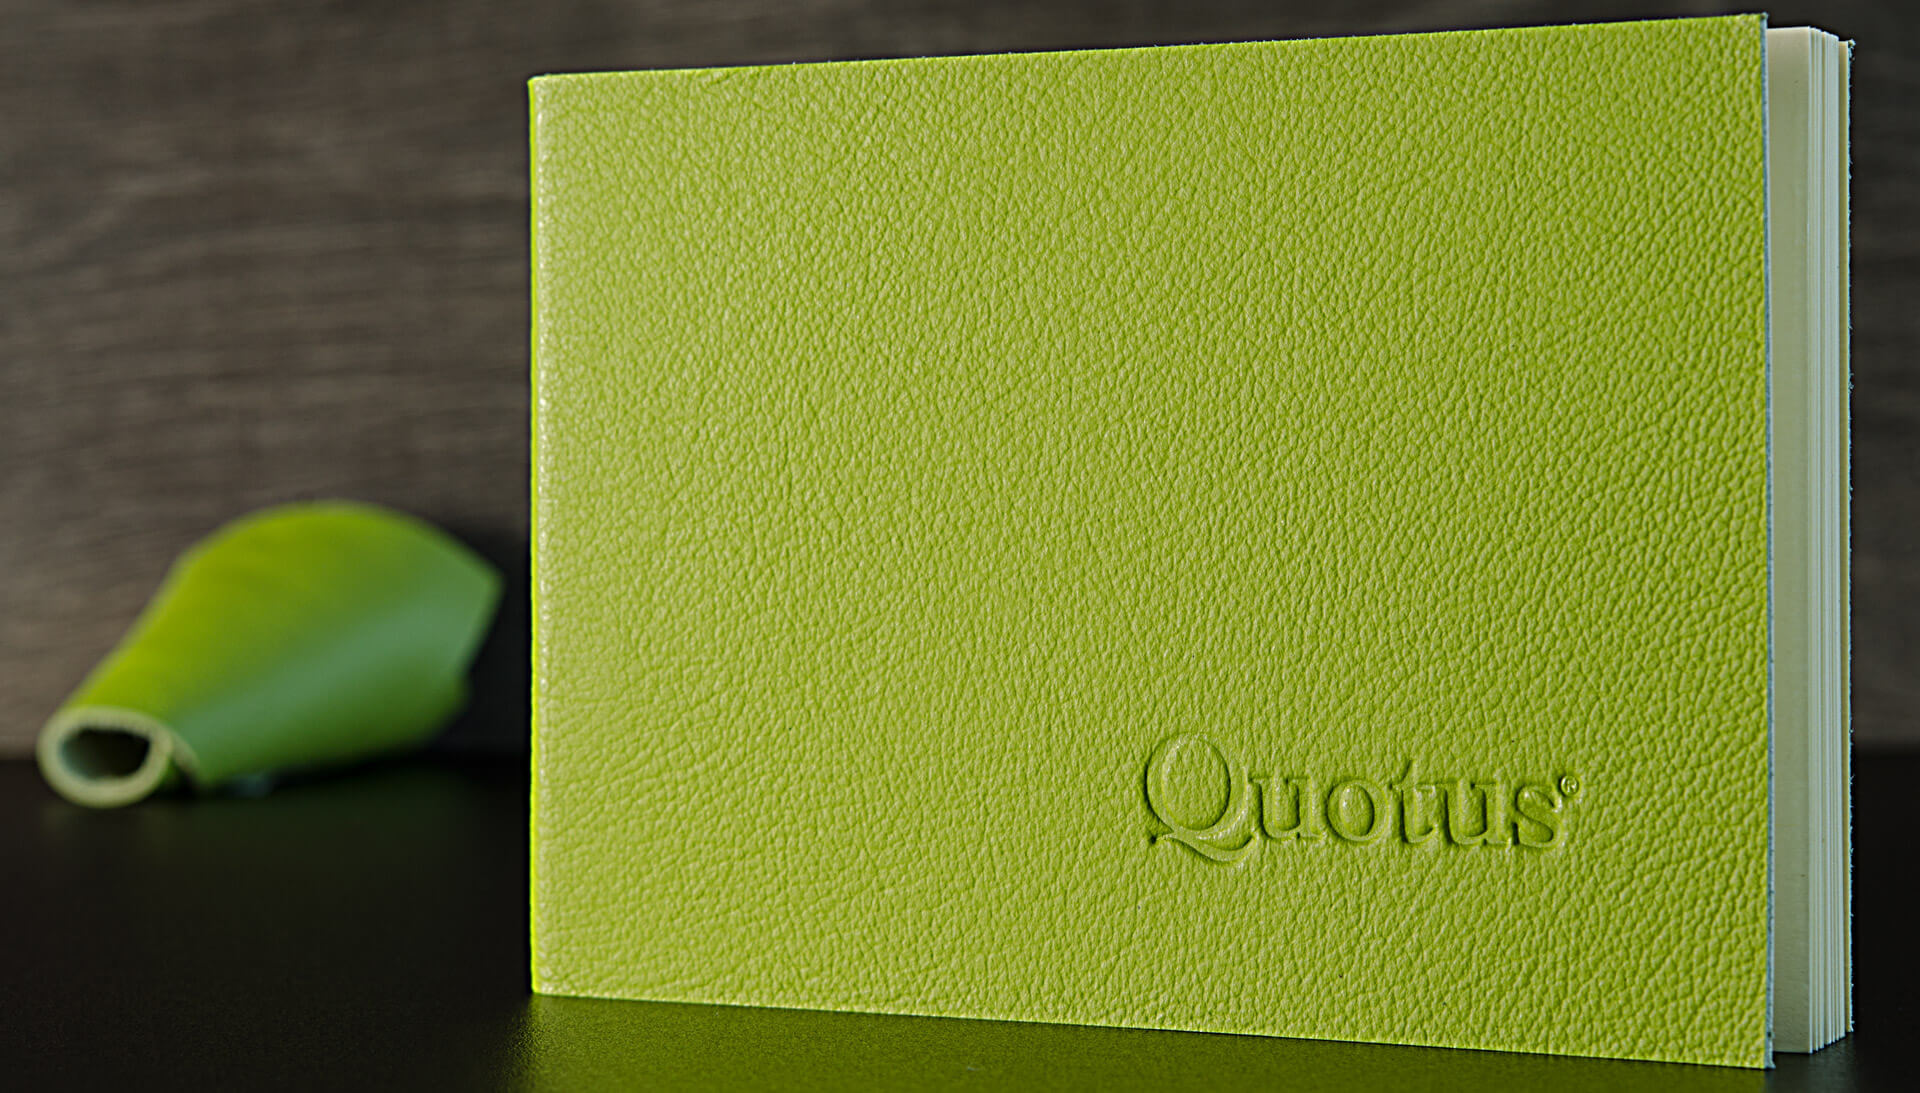 Cartoleria in pelle Quotus - Mini Block Notes a righe Pavra, colore verde